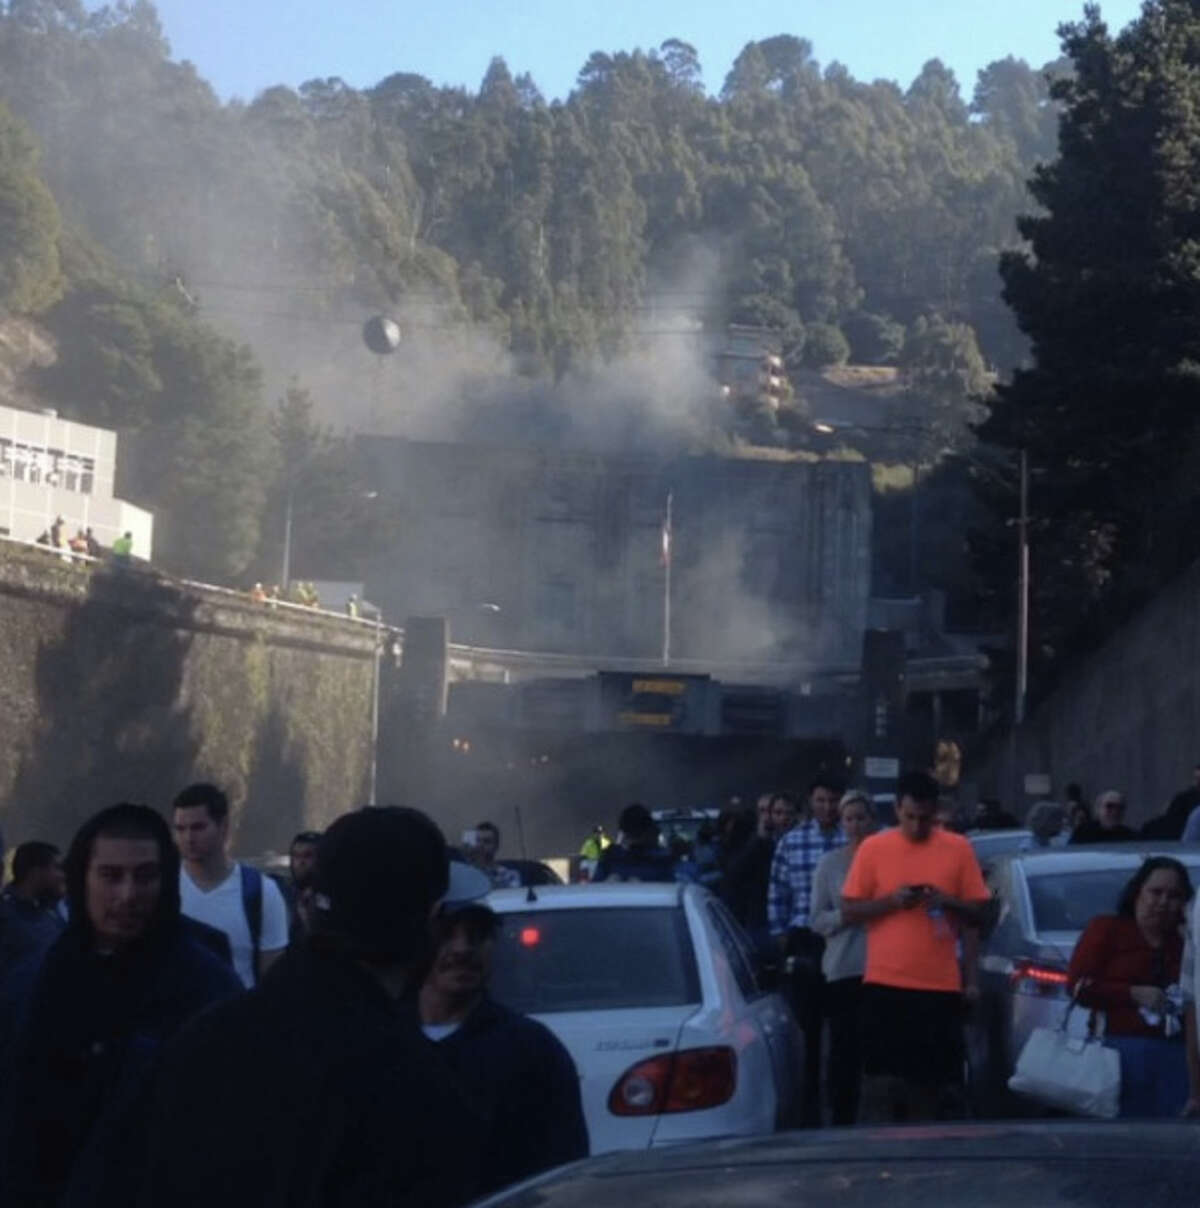 A car fire Friday morning in the Caldecott Tunnel on Highway 24 shut down the only eastbound bore, snarling traffic.